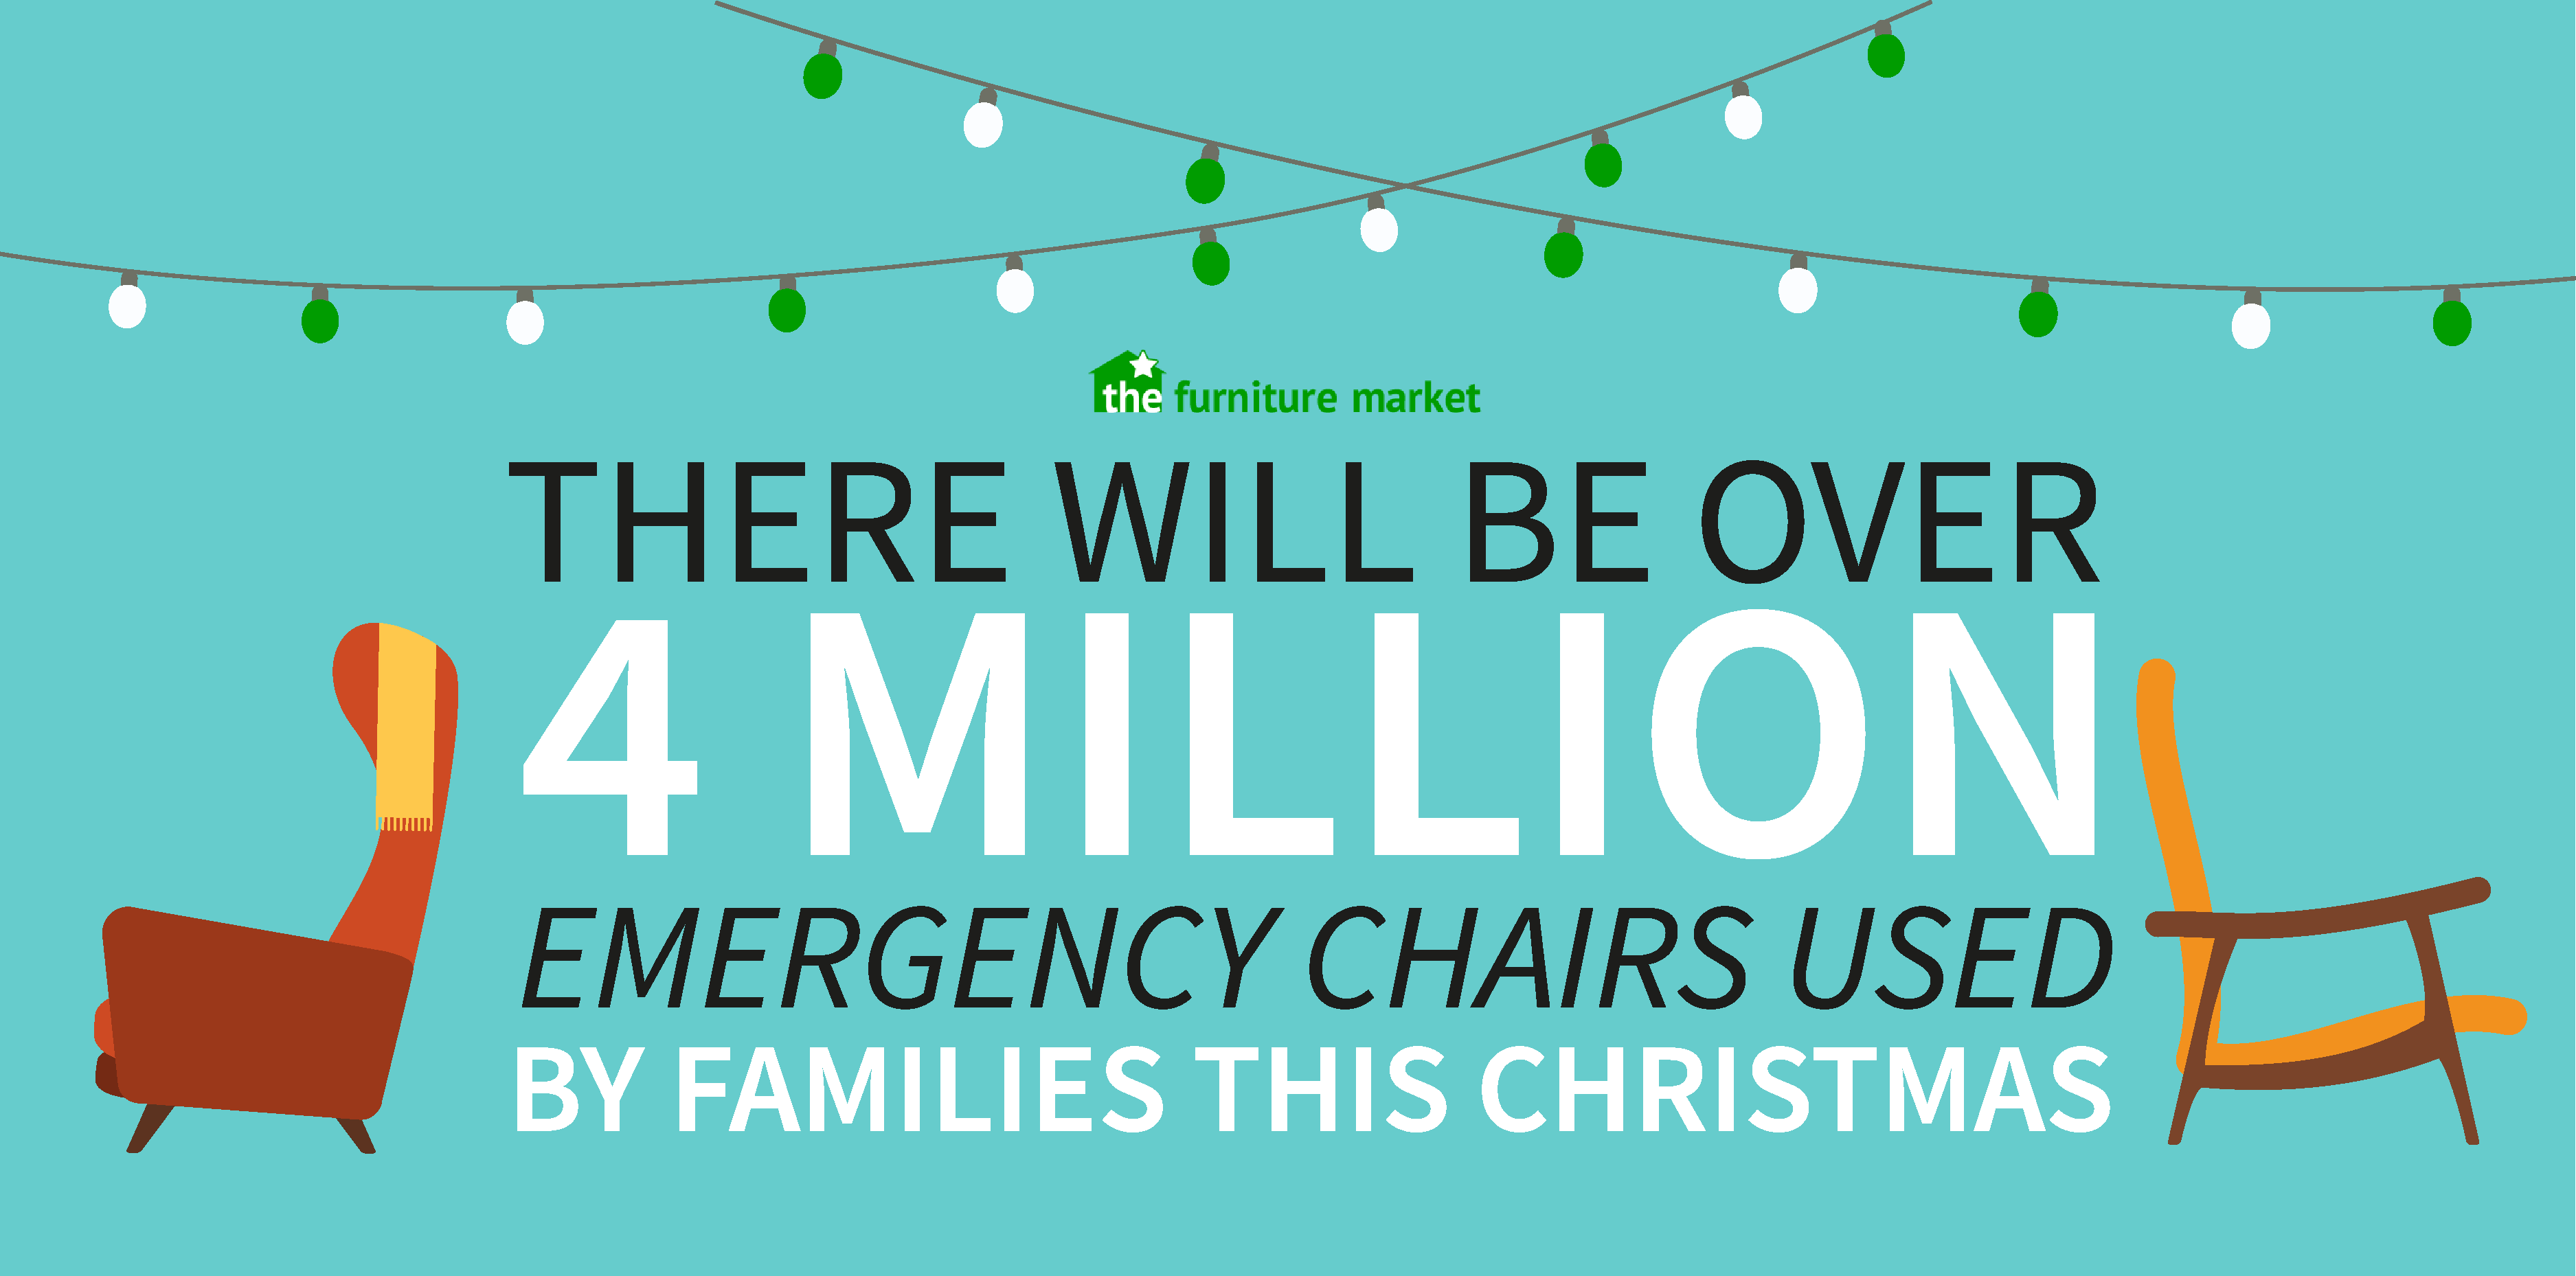 25% of Families Use Emergency Chairs